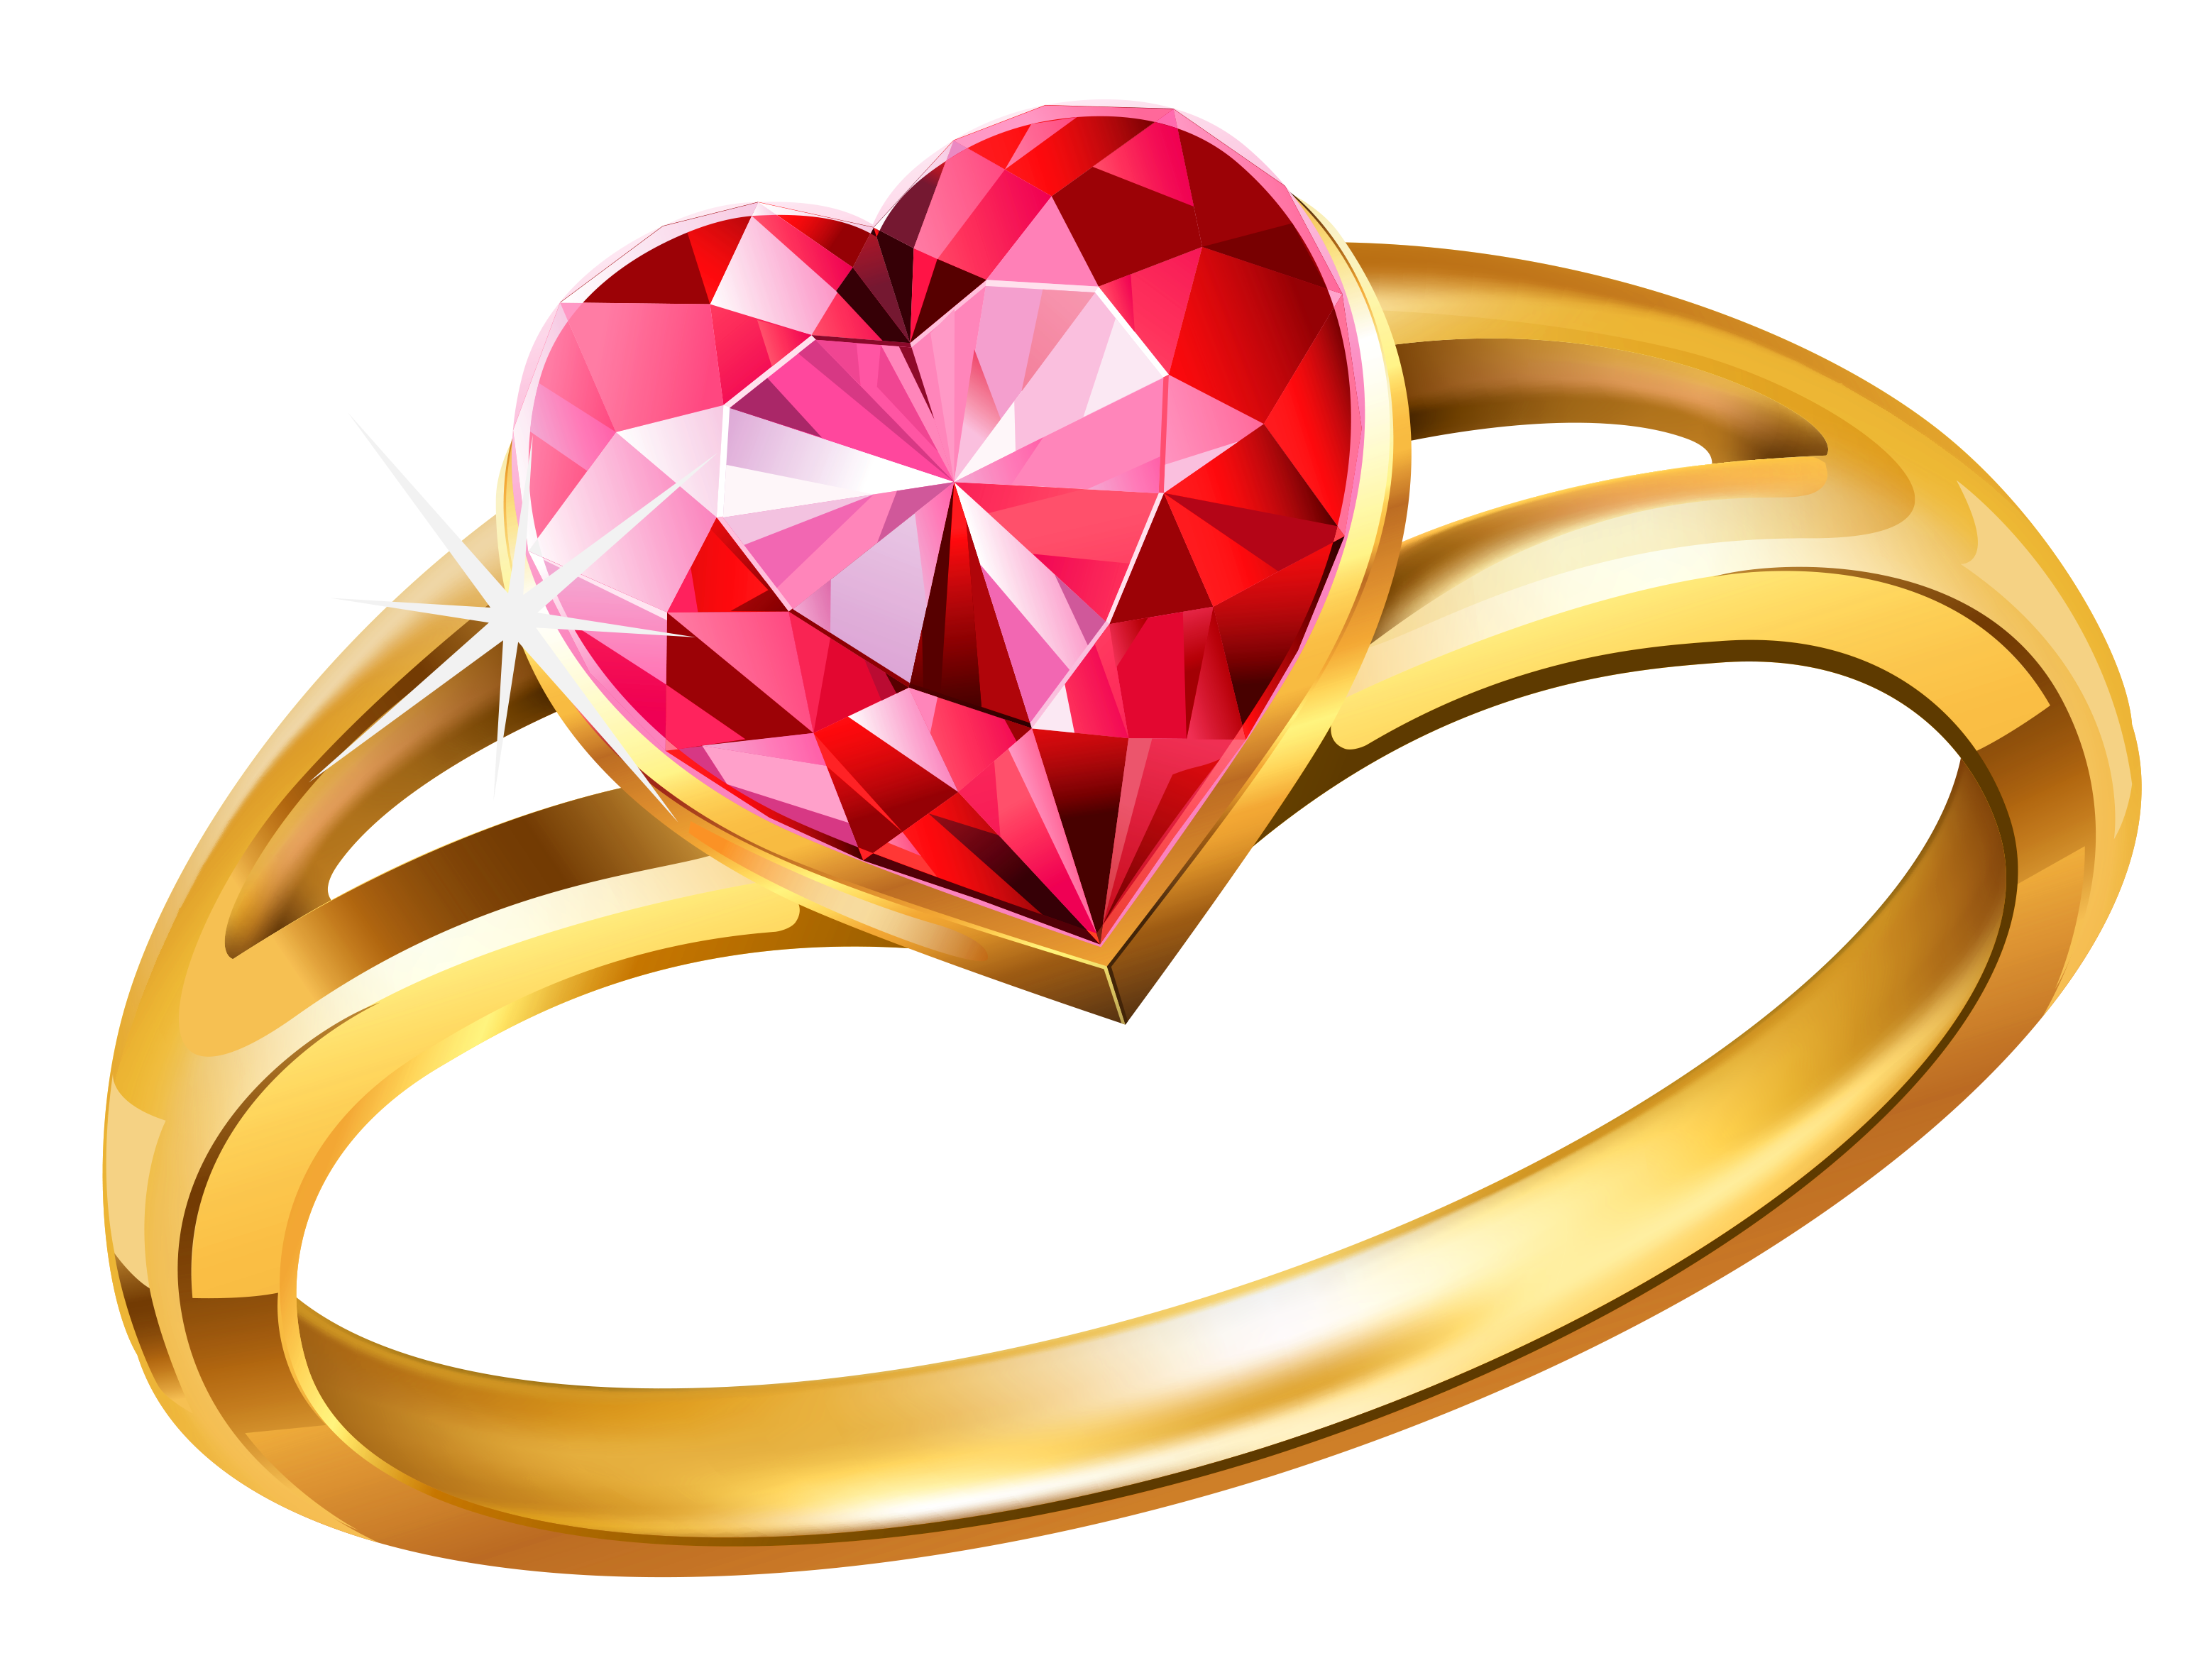 Ring clipart #3, Download drawings